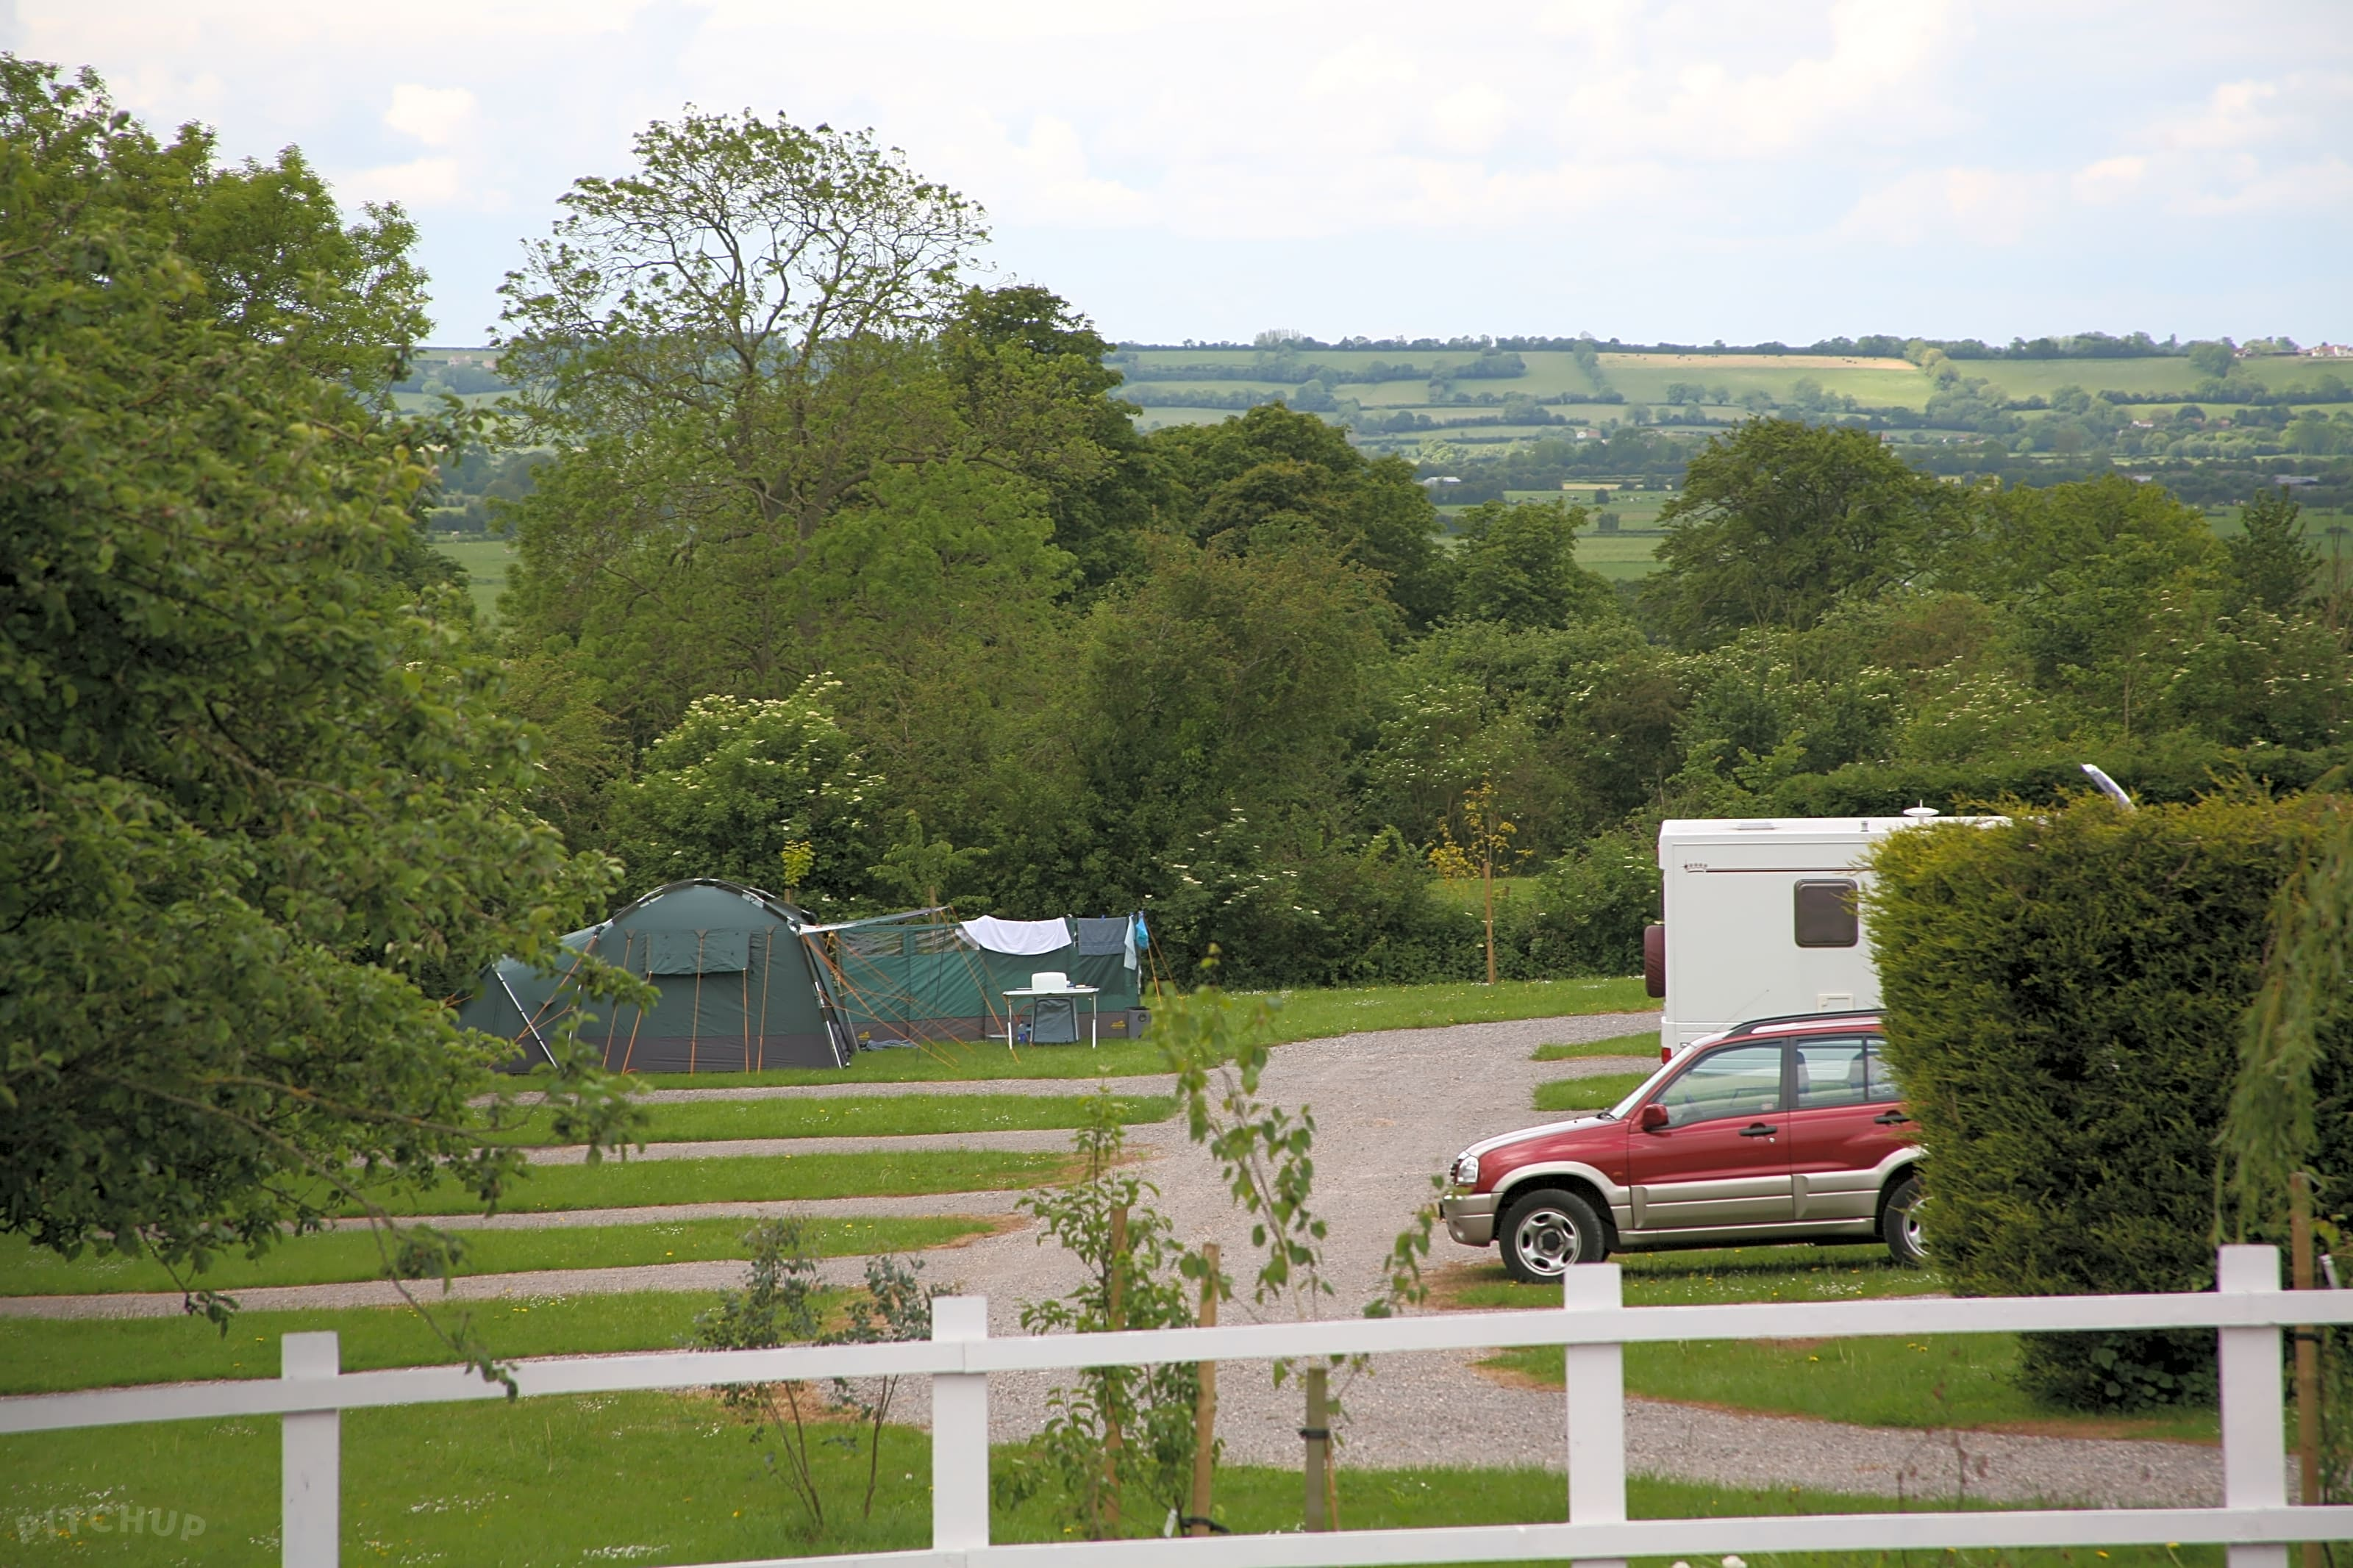 The Rodney Stoke Caravan and Camping Park